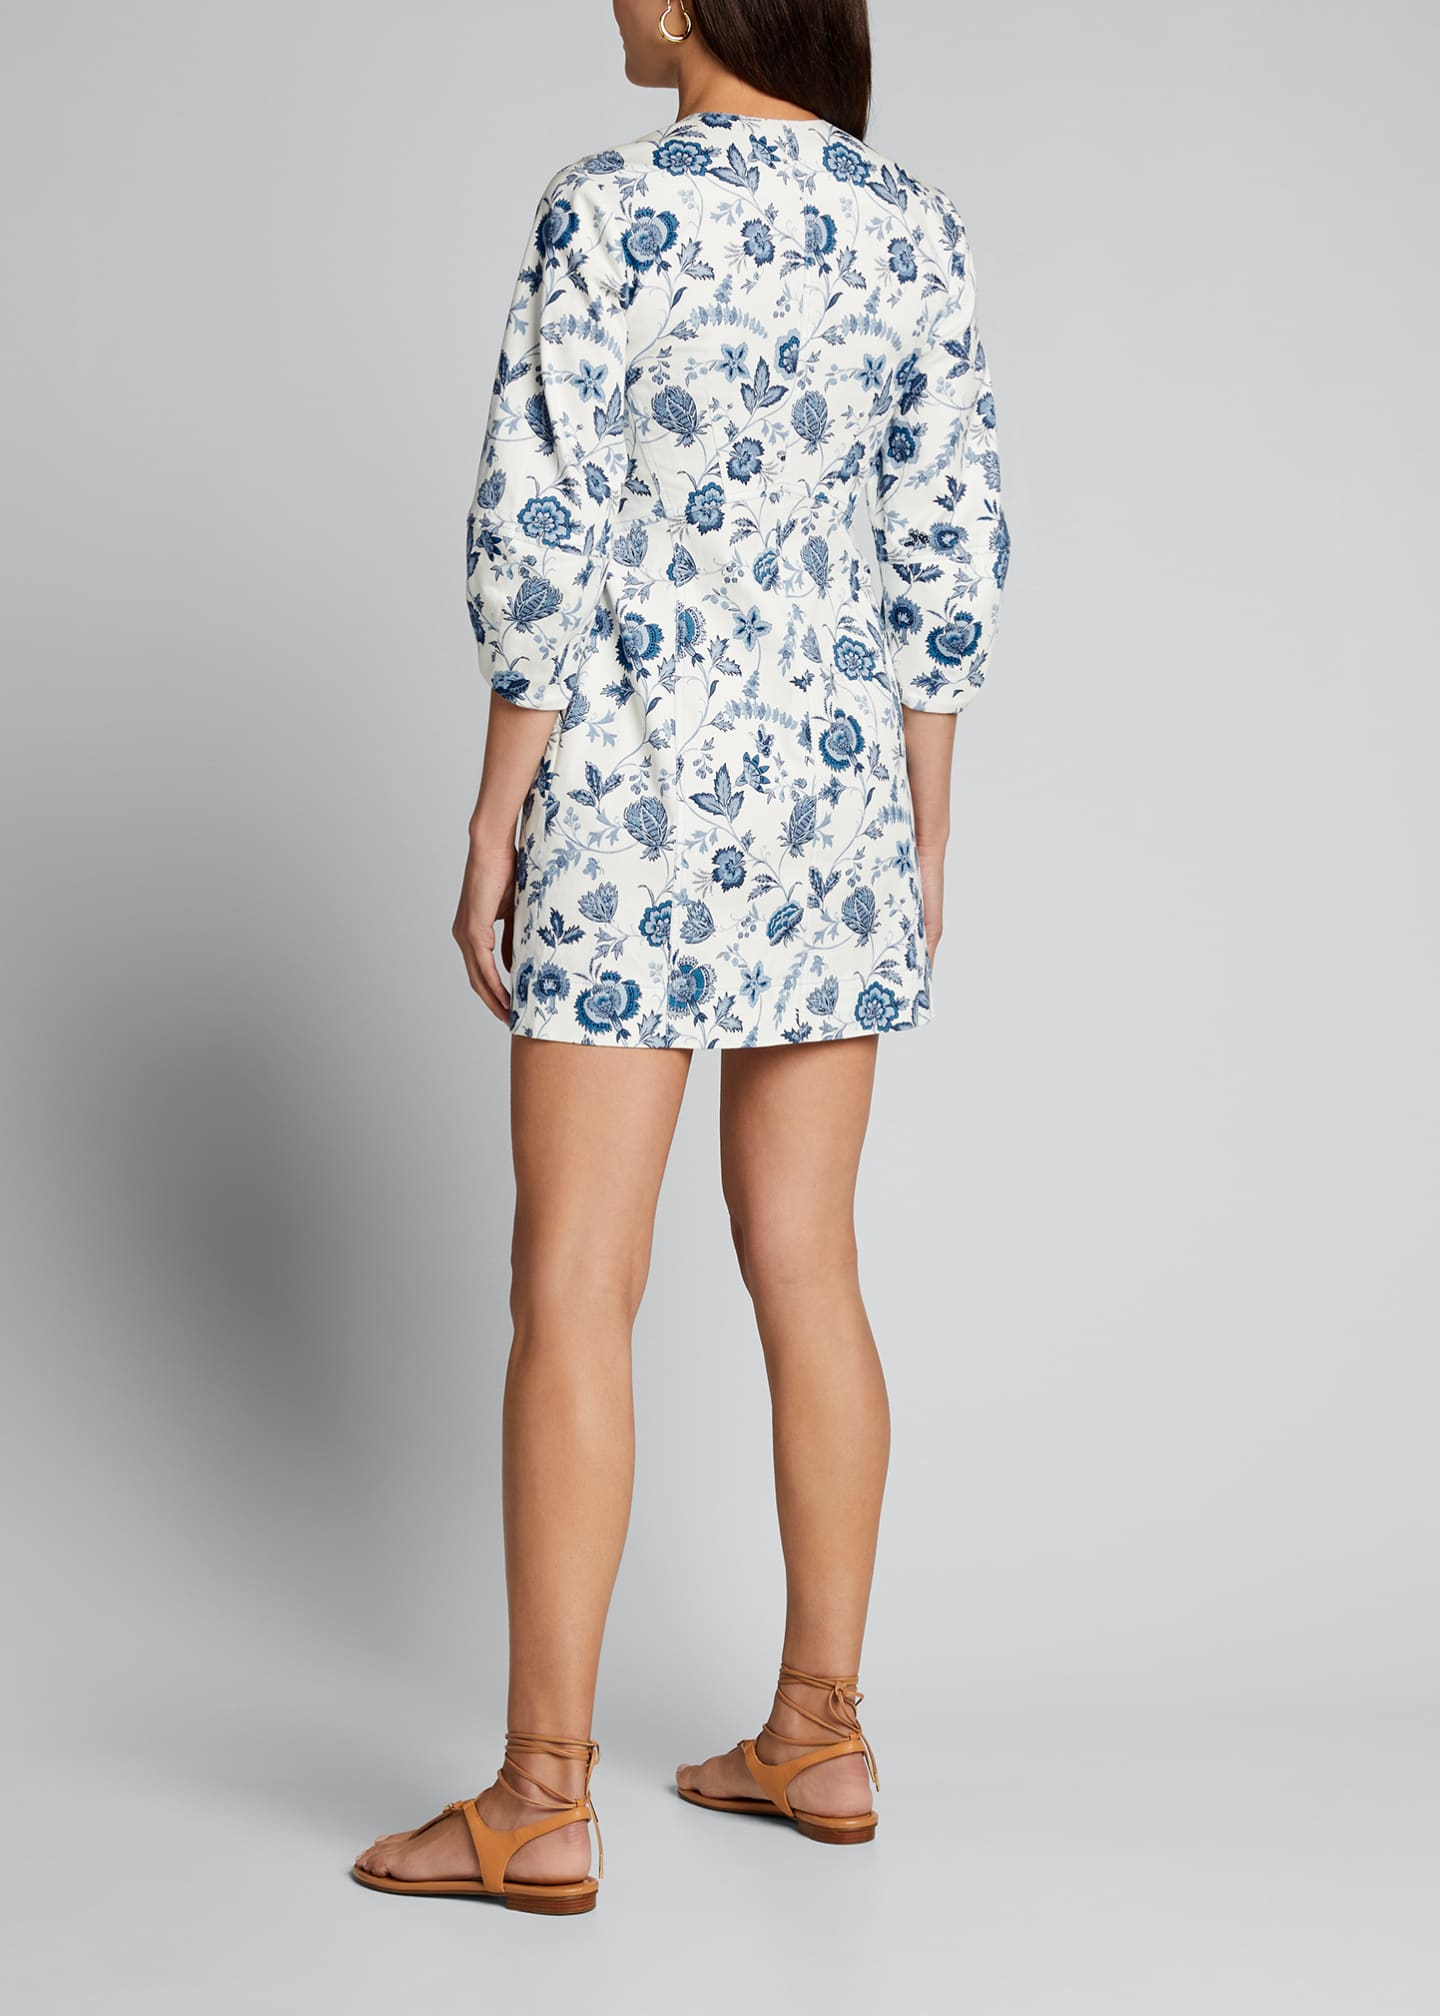 Image 2 of 5: Ottilie Floral Print 3/4-Sleeve Dress